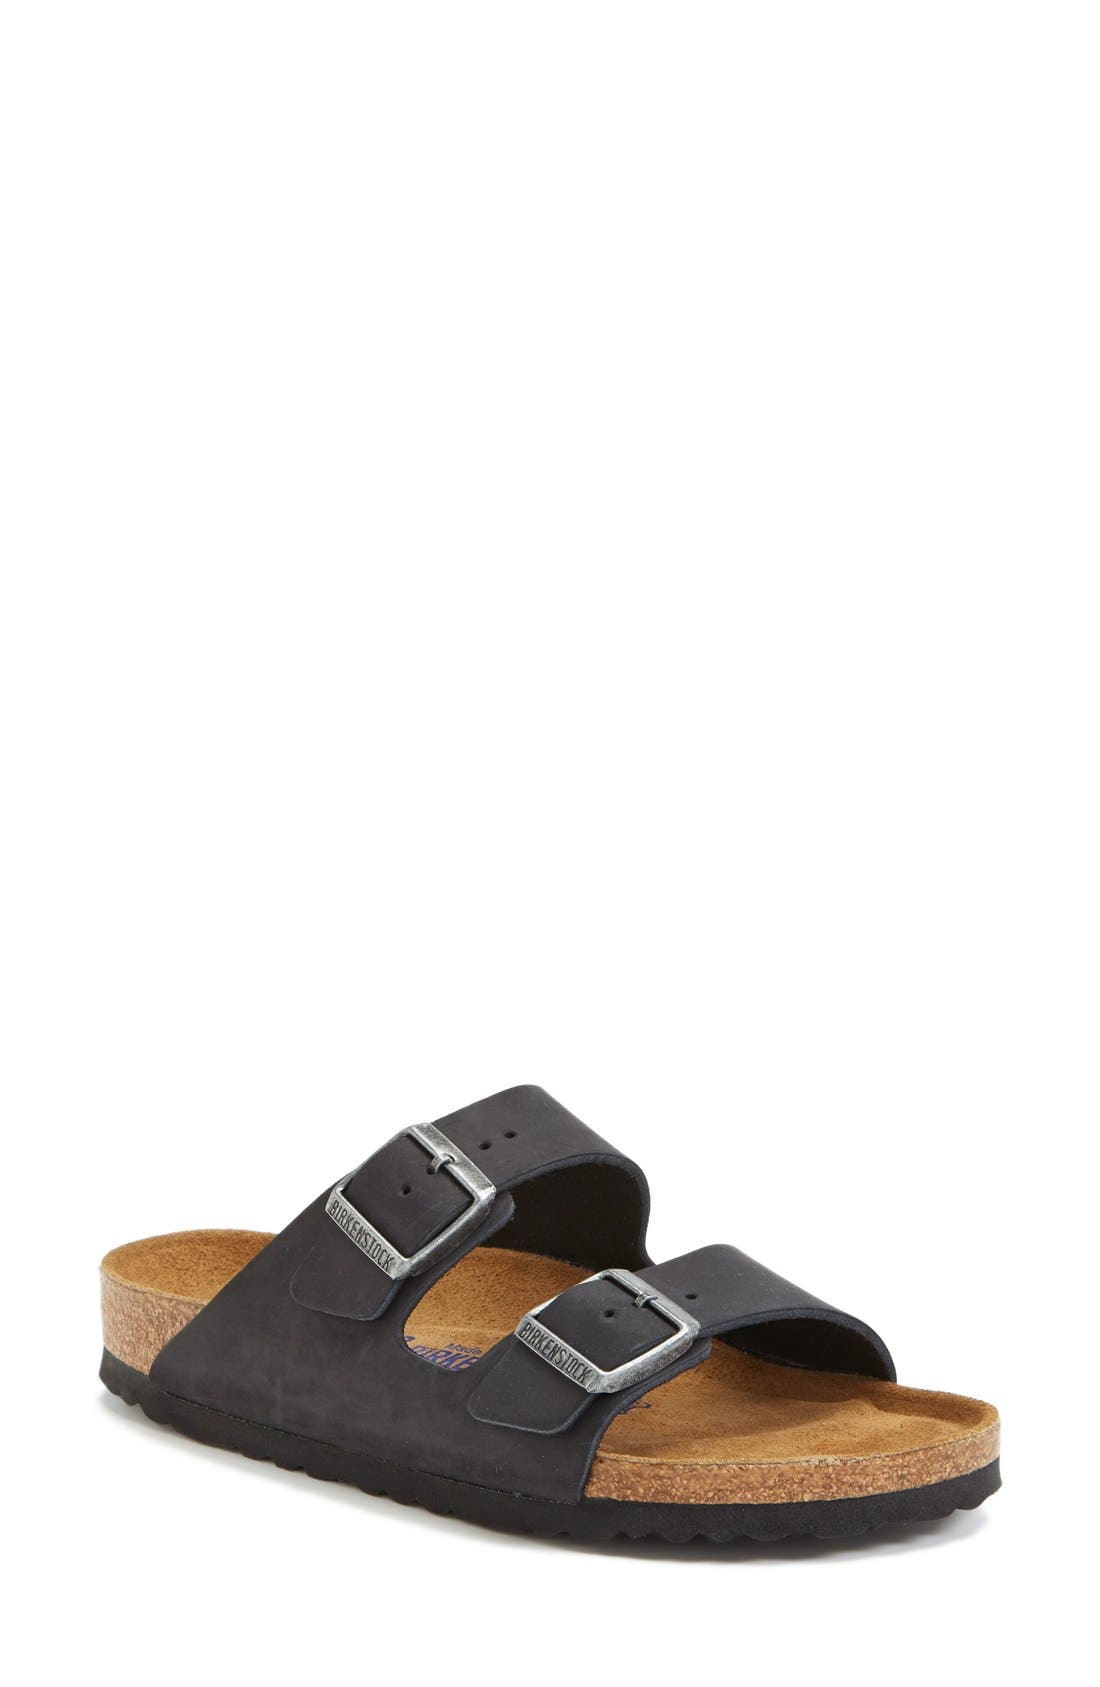 Main Image - Birkenstock 'Arizona' Soft Footbed Sandal (Women)